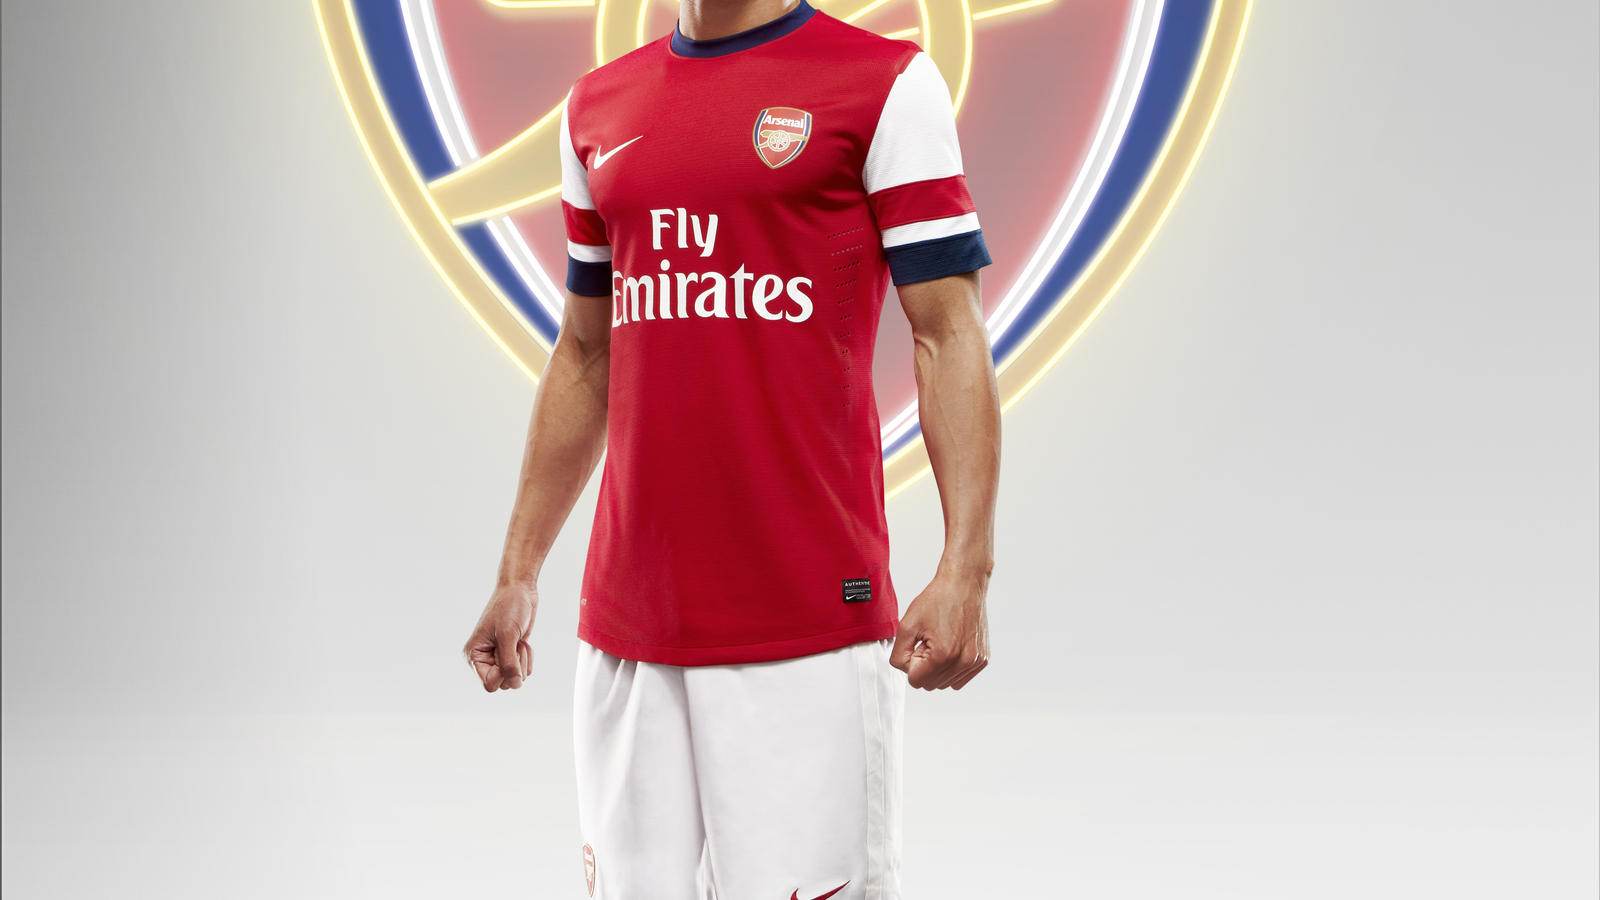 arsenal full home kit on sale   OFF51% Discounts 17107751d